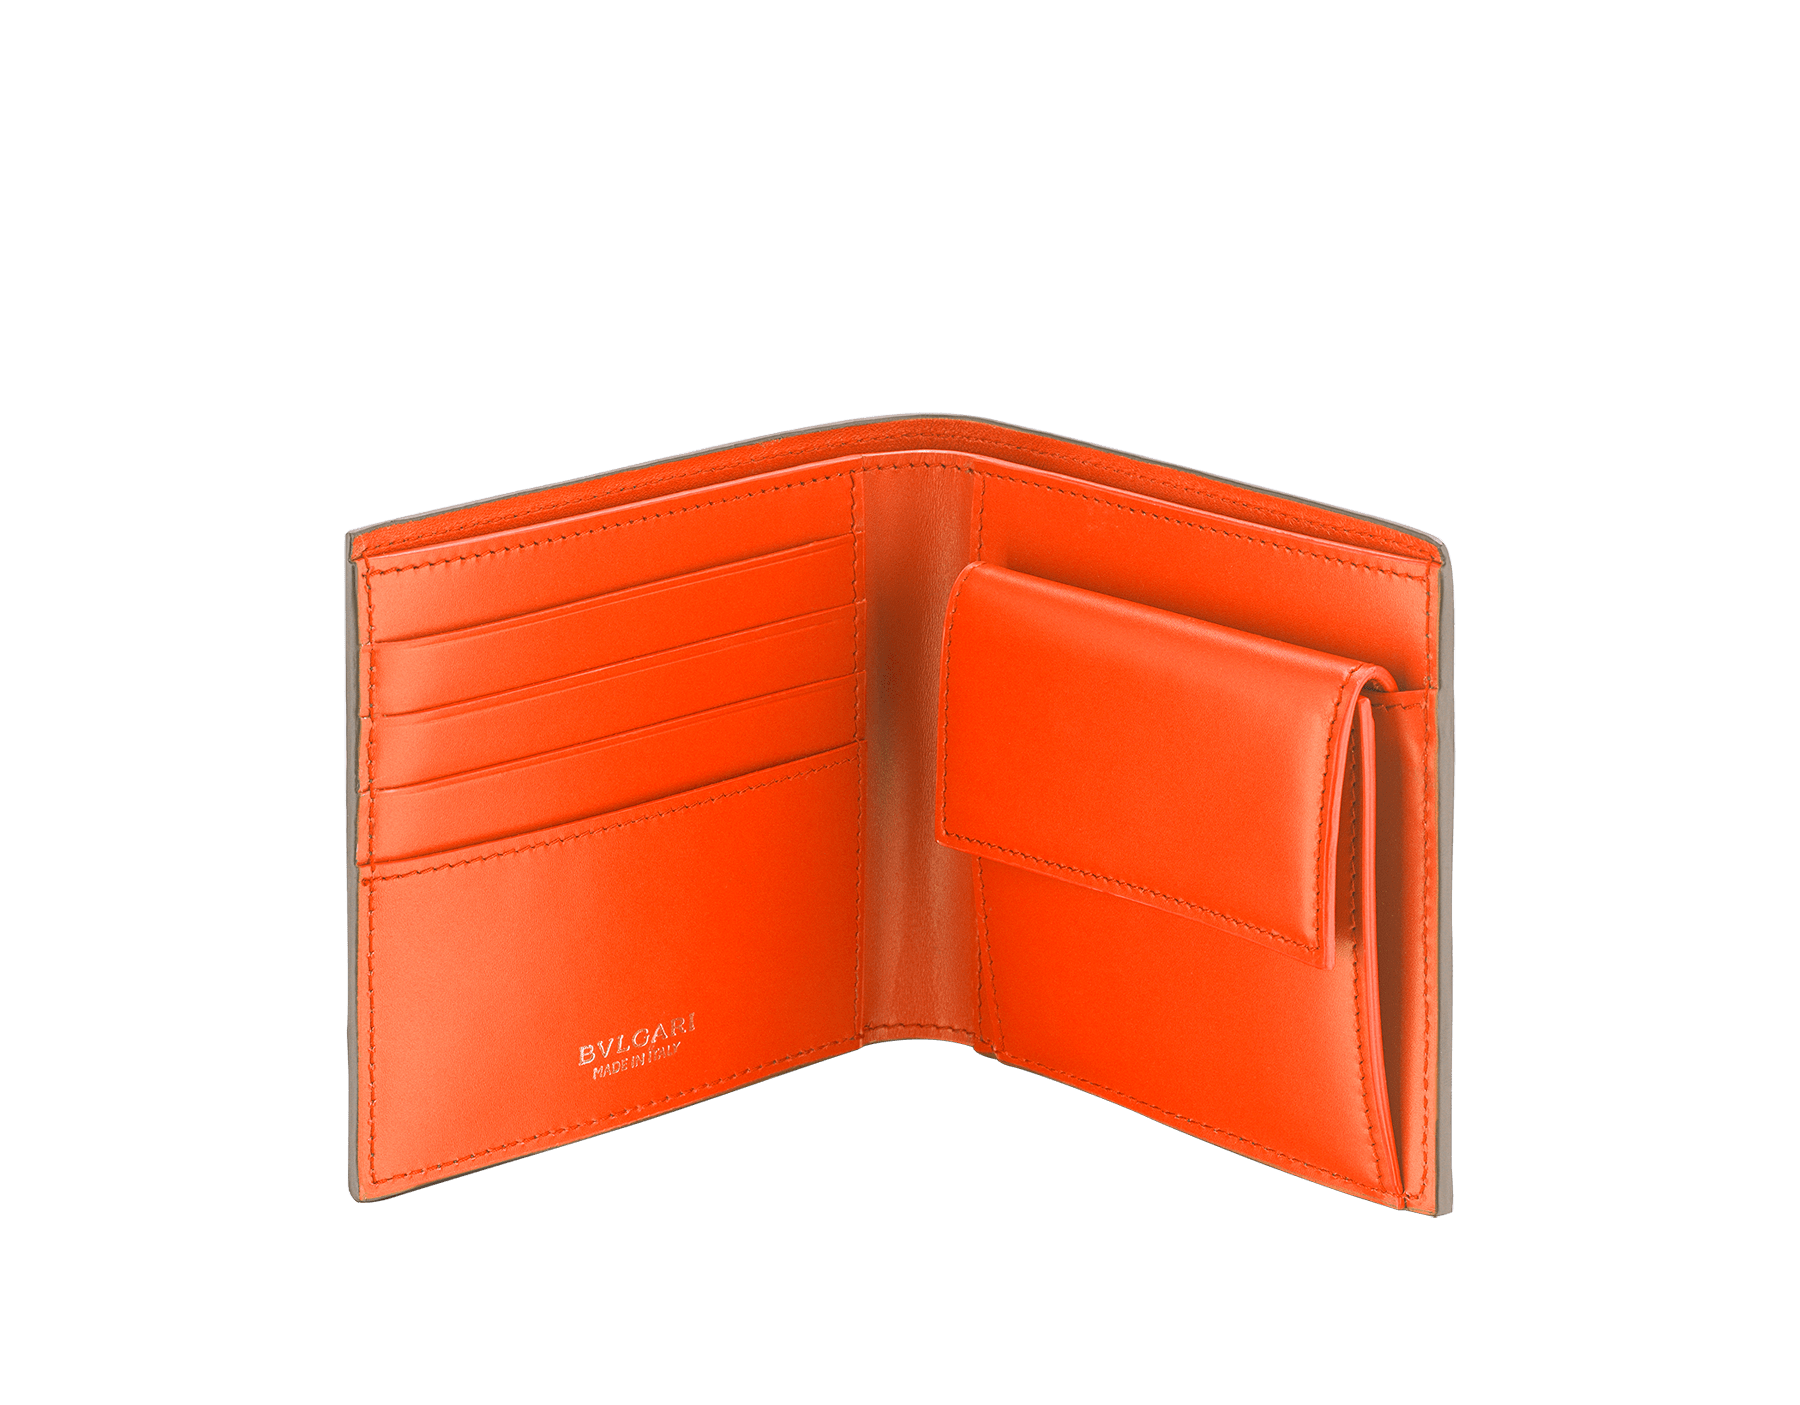 """BVLGARI BVLGARI"" compact wallet in mimetic jade soft full grain calf leather and fire amber calf leather. Iconic logo decoration in palladium plated brass coloured in fire amber enamel. BBM-WLT-ITAL-sgcl image 2"